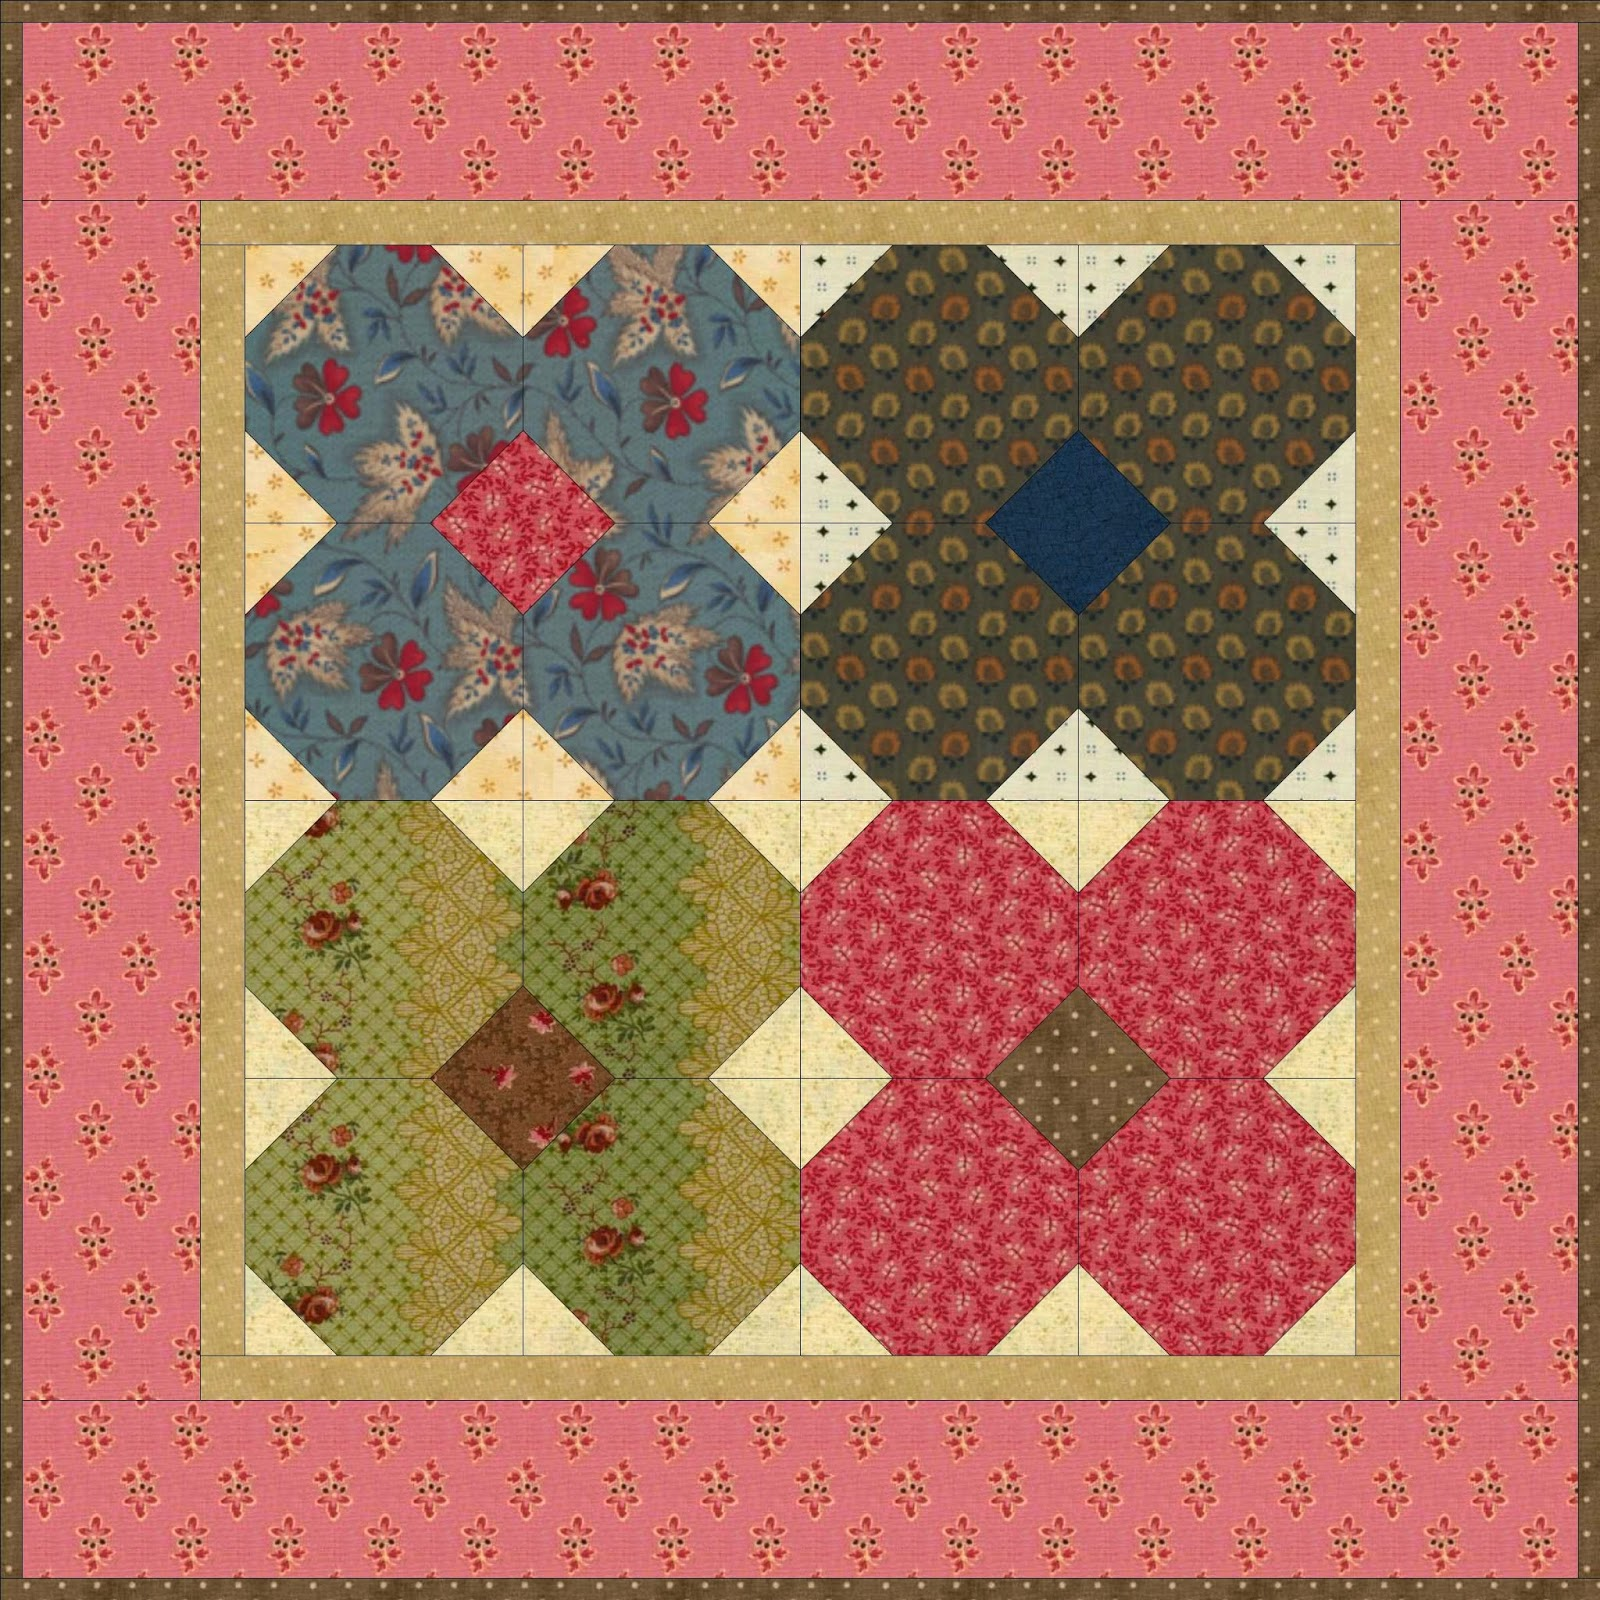 A Sentimental Quilter: What Have They Done with Spring?